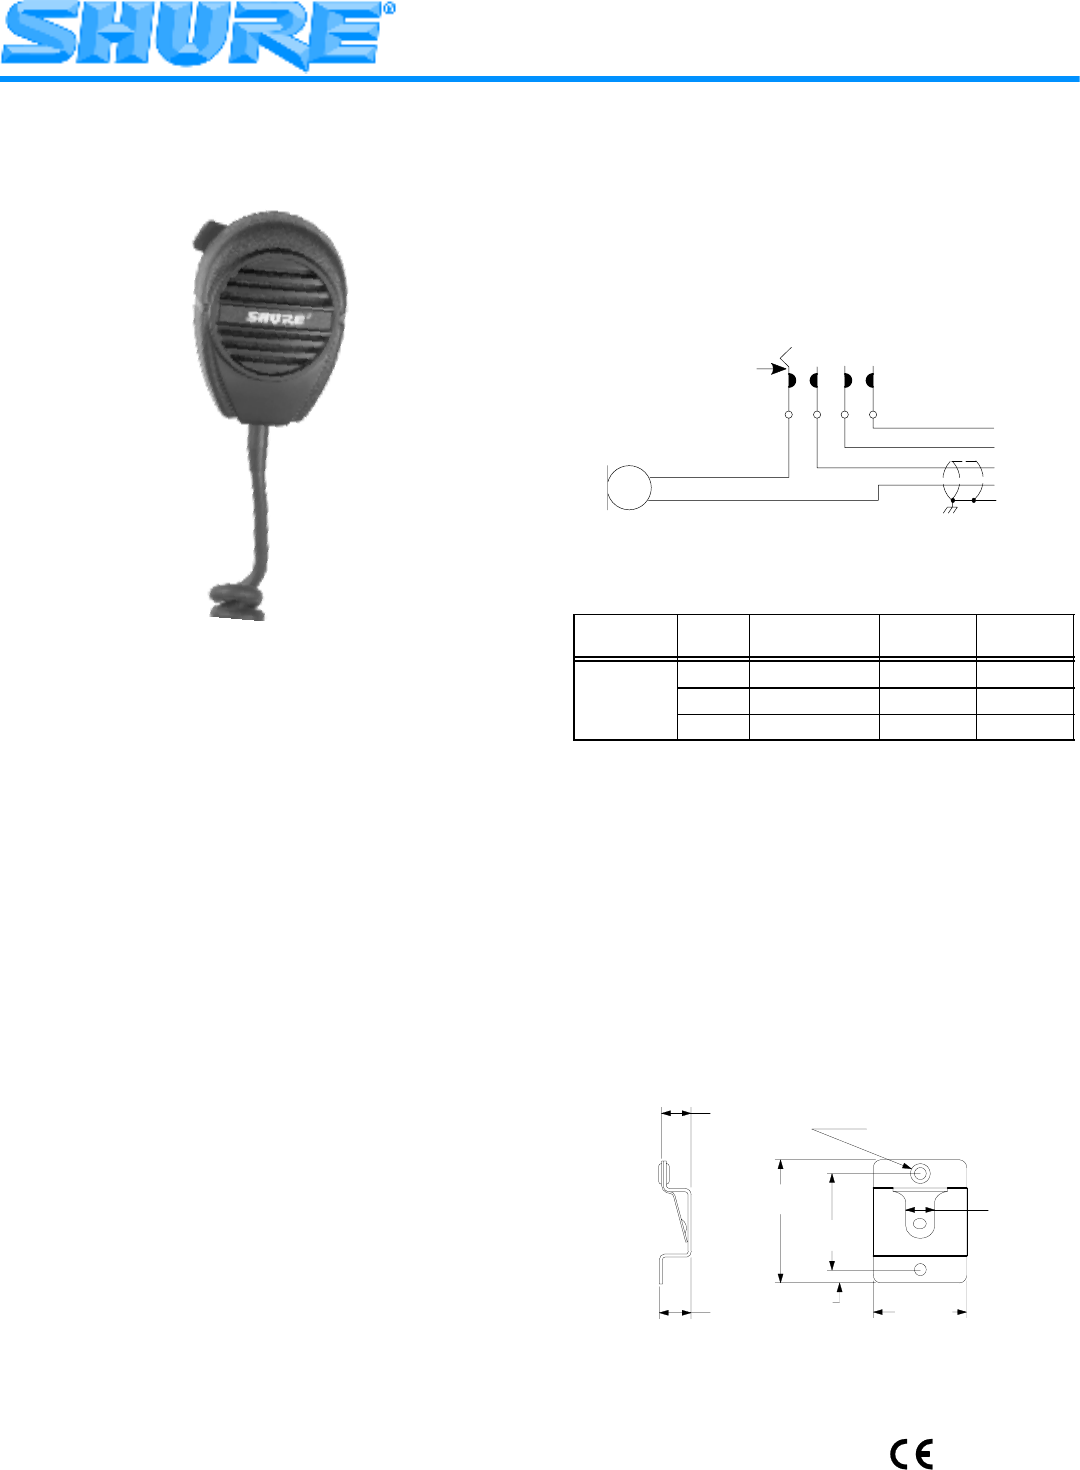 51023184 5c12 4755 a87e ea2d206ace3c bg1 shure microphone 514b user guide manualsonline com shure 514b wiring diagram at nearapp.co